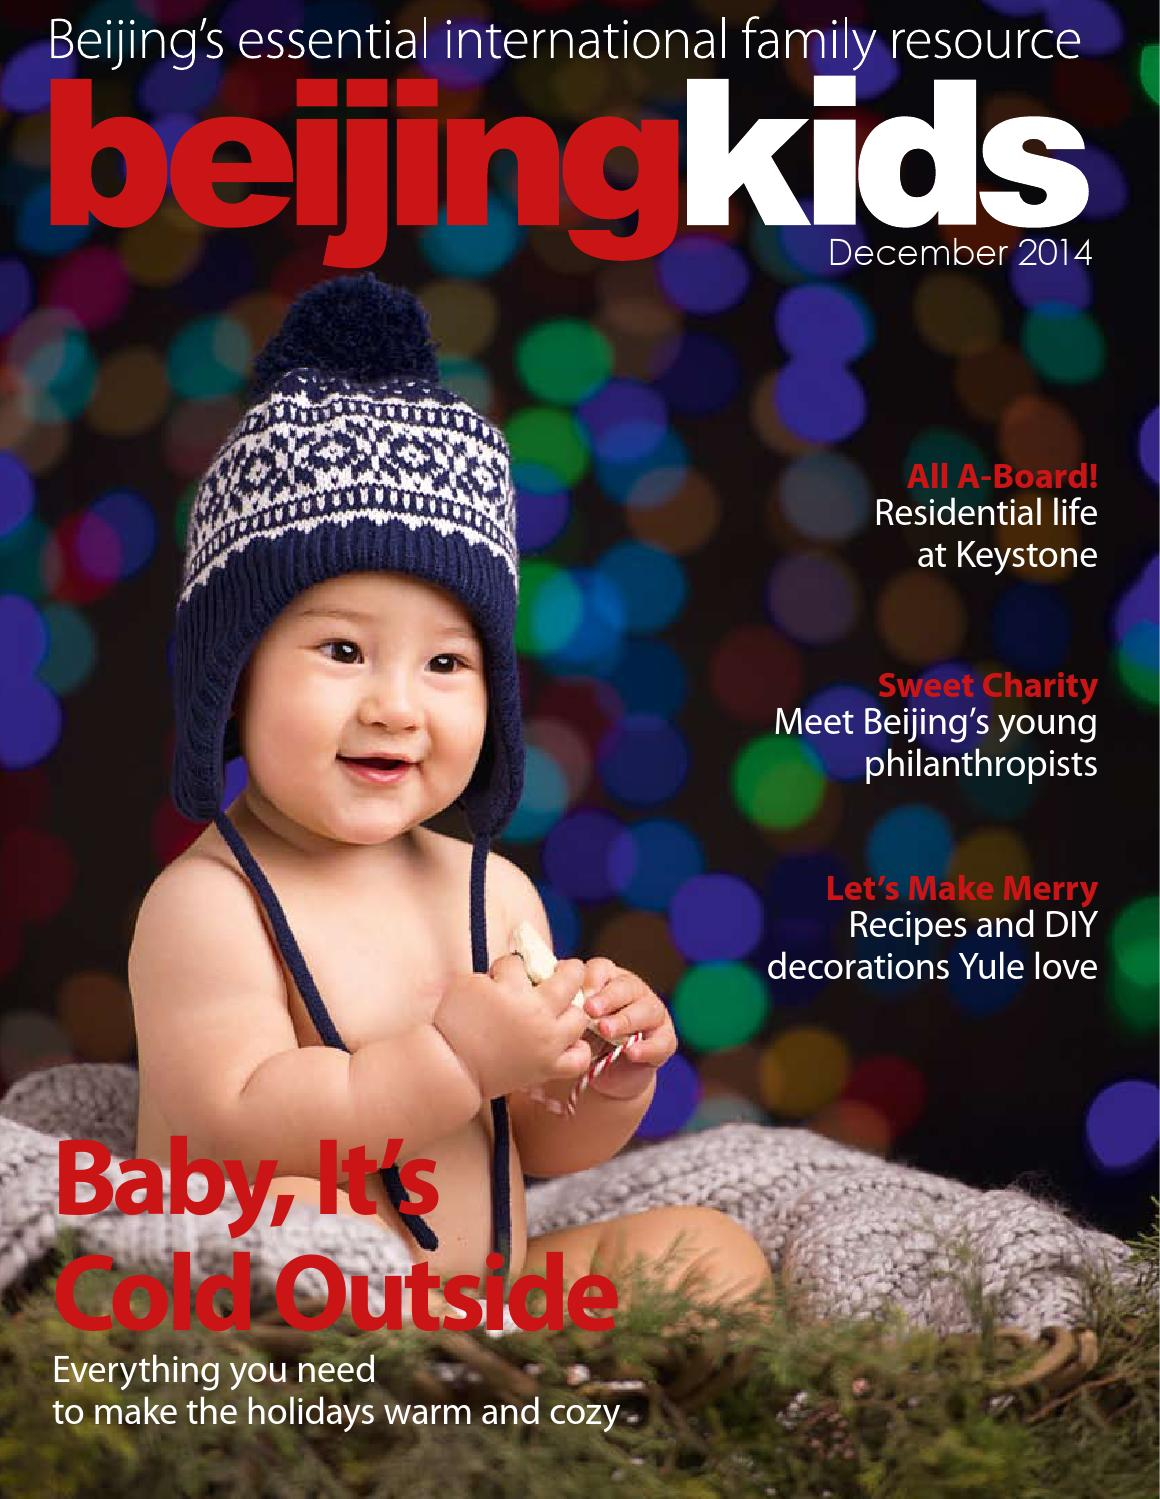 a464da114a8e Beijingkids Dec 2014 by beijingkids - issuu